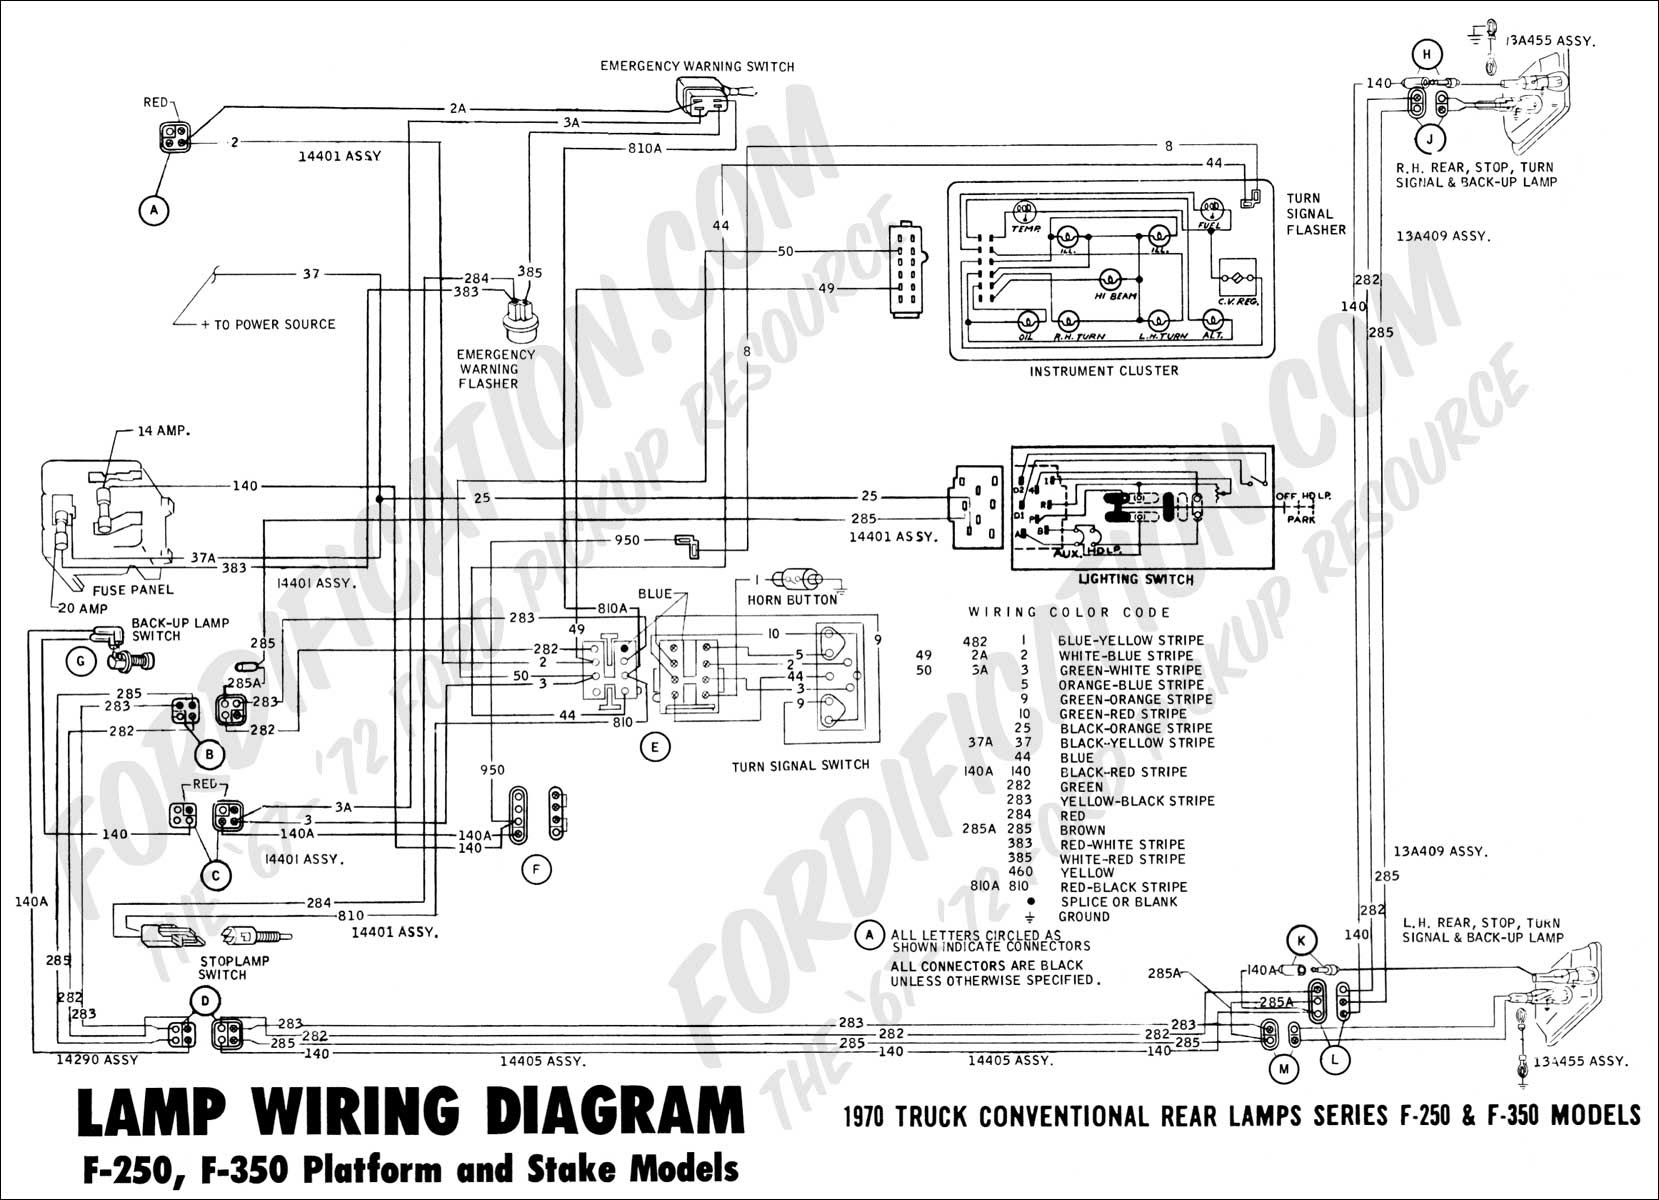 05 Ford F 150 Fuel Pump Wiring Harness Diagram Nippondenso 021000 8620 12v Alternator Wiring Diagram Wiring Diagram Schematics